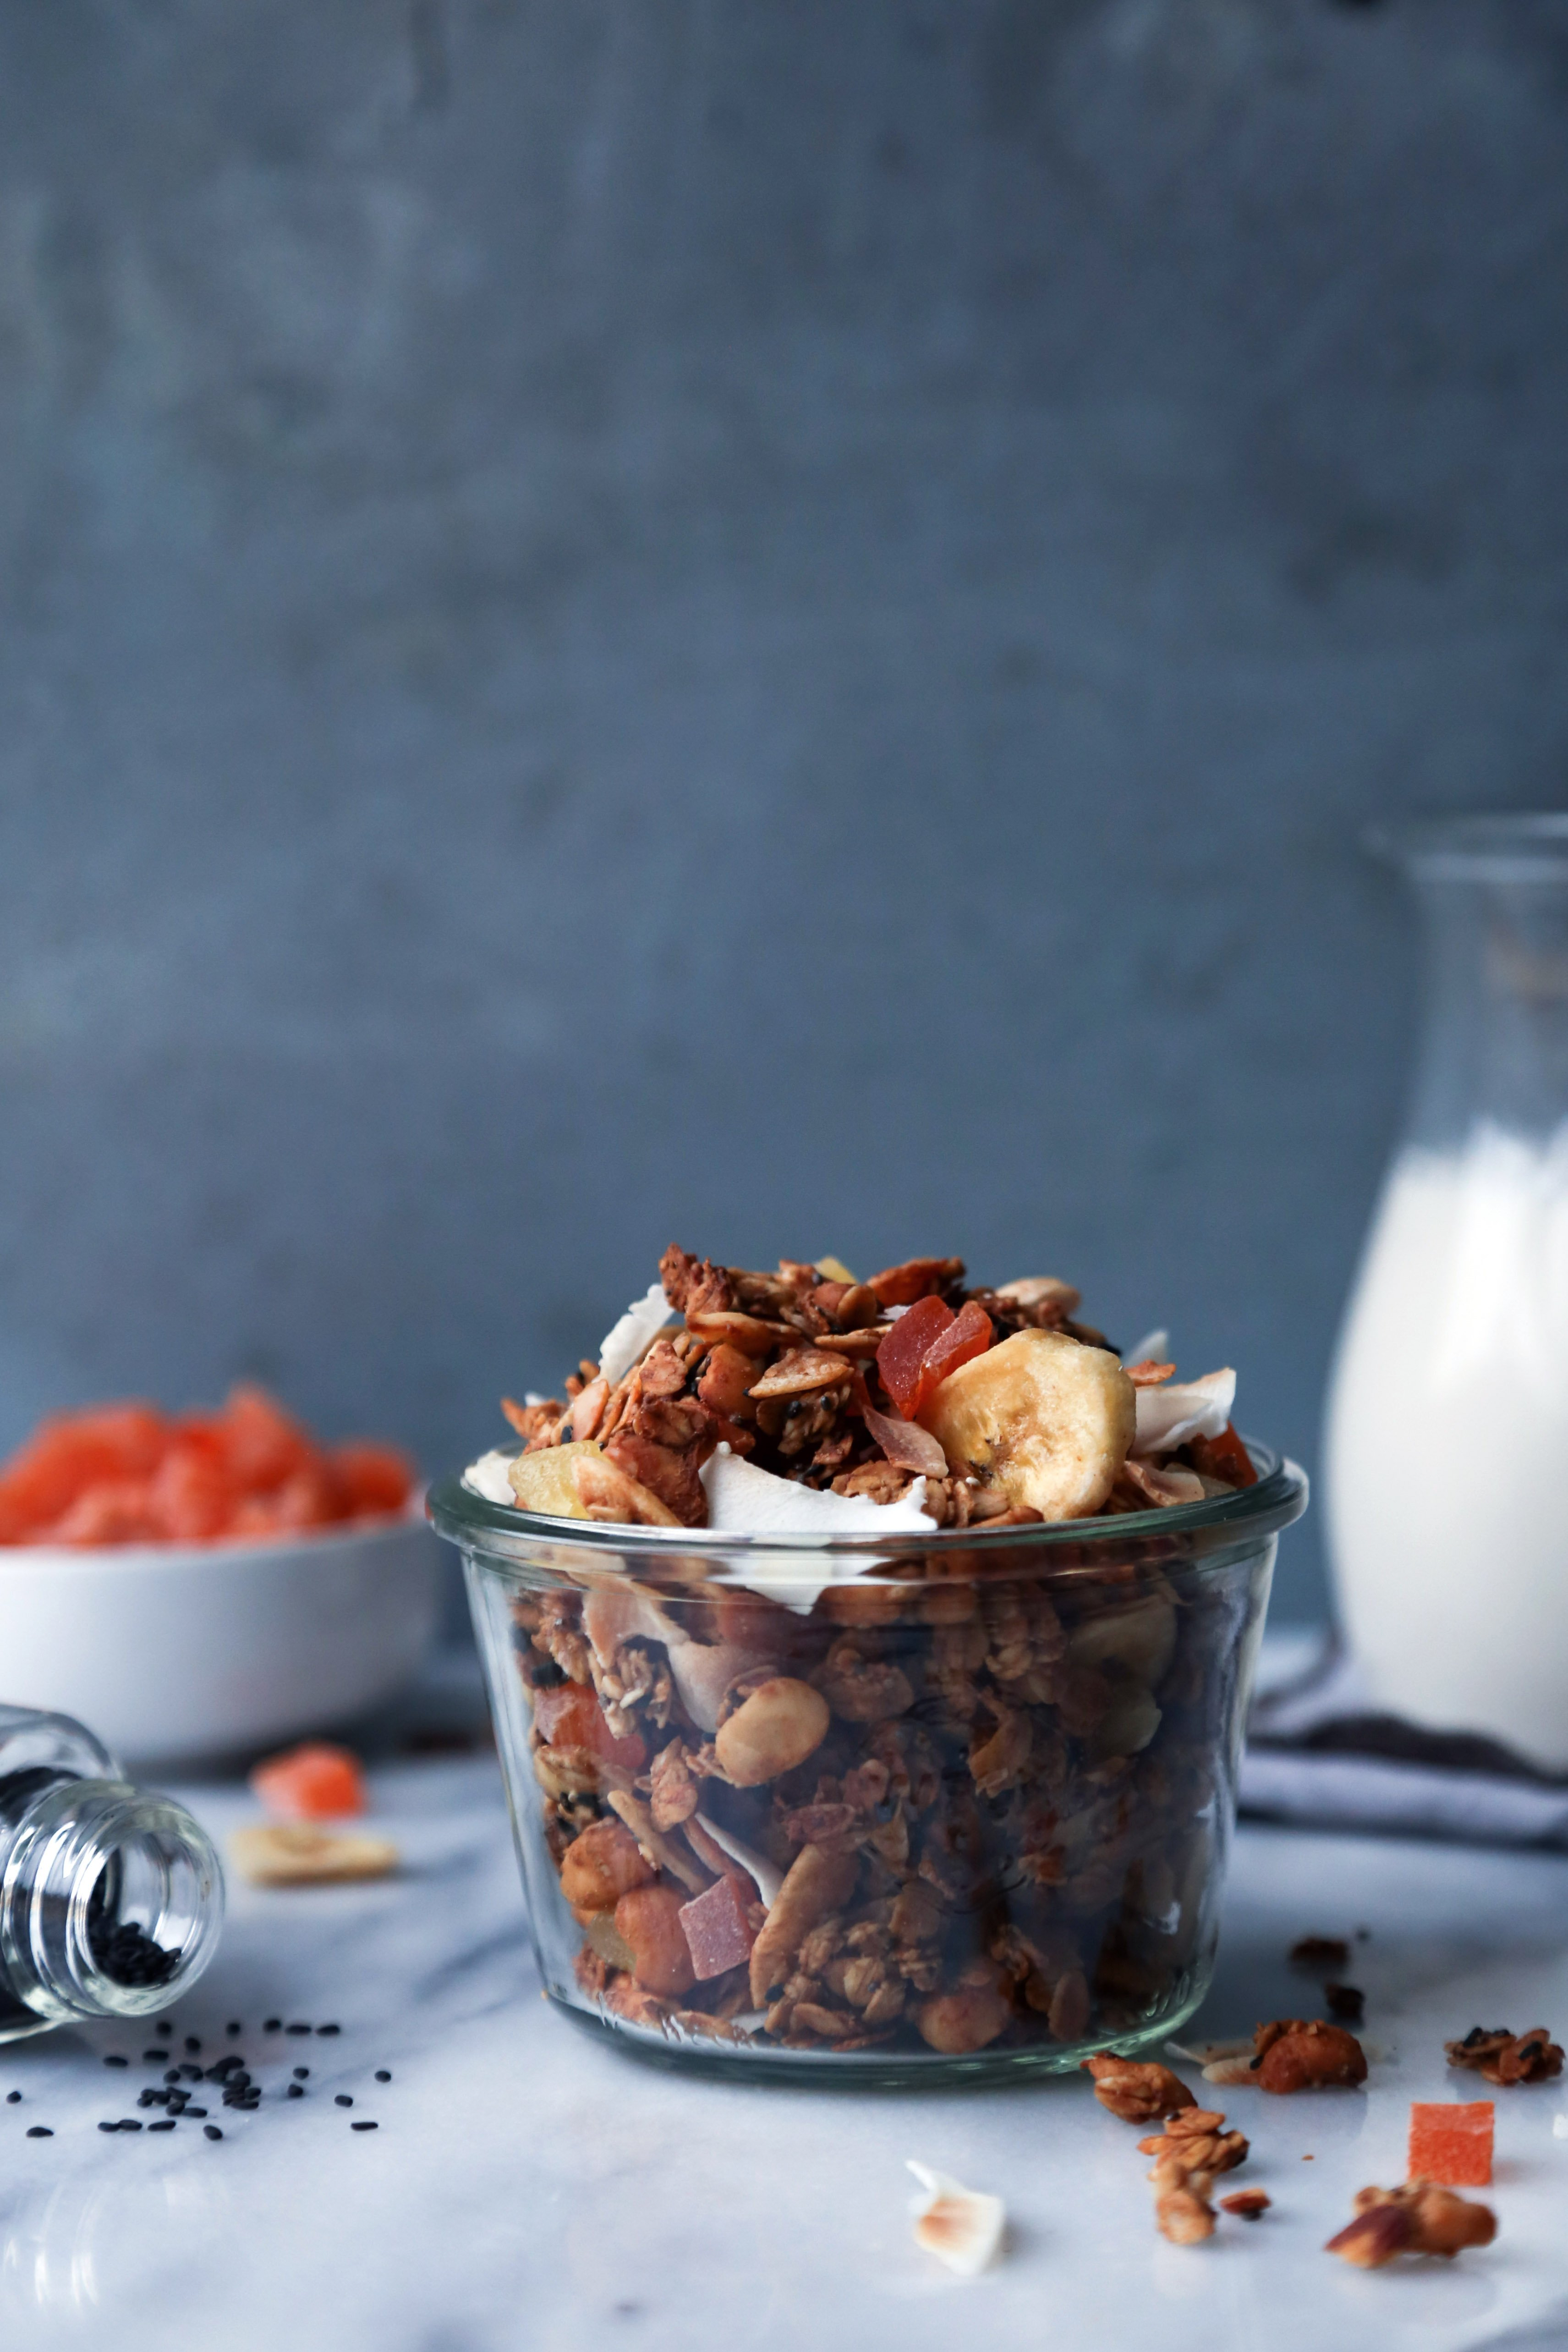 Tropical Granola Sweetened With Fruit | Gluten, dairy, and refined sugar free. Can easily be made grain-free.